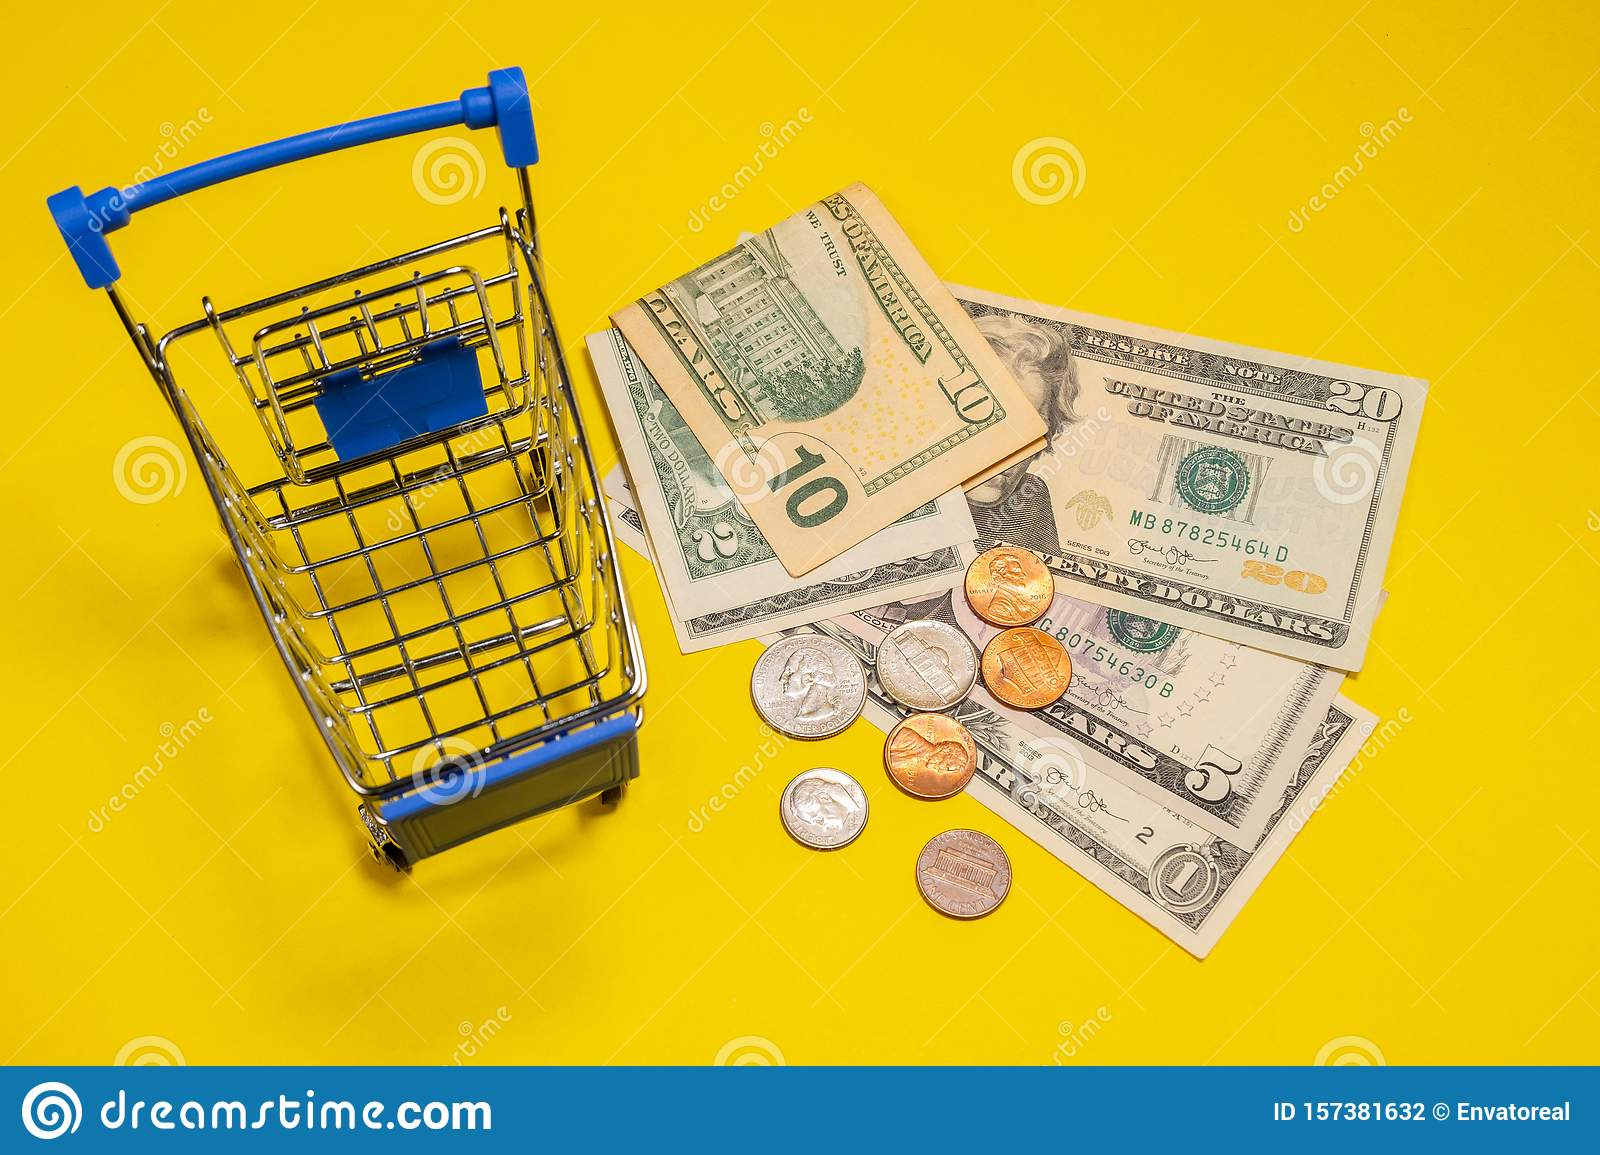 Us Dollars And Cents Next To The Supermarket Shopping